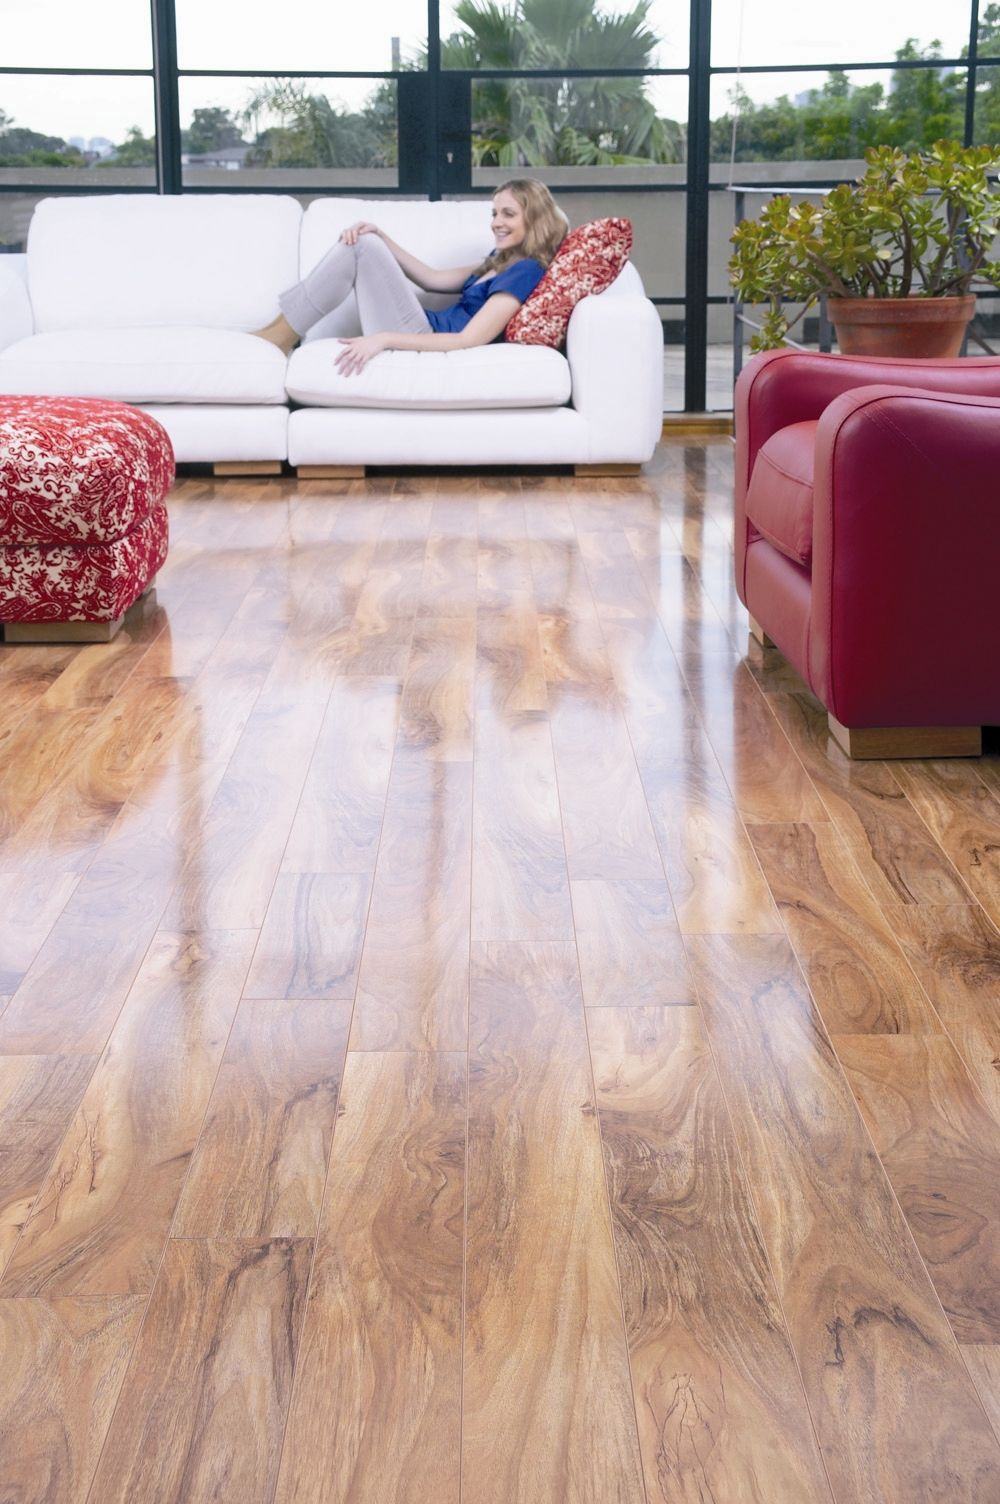 Timber Impressions Laminate Flooring Pacific Walnut